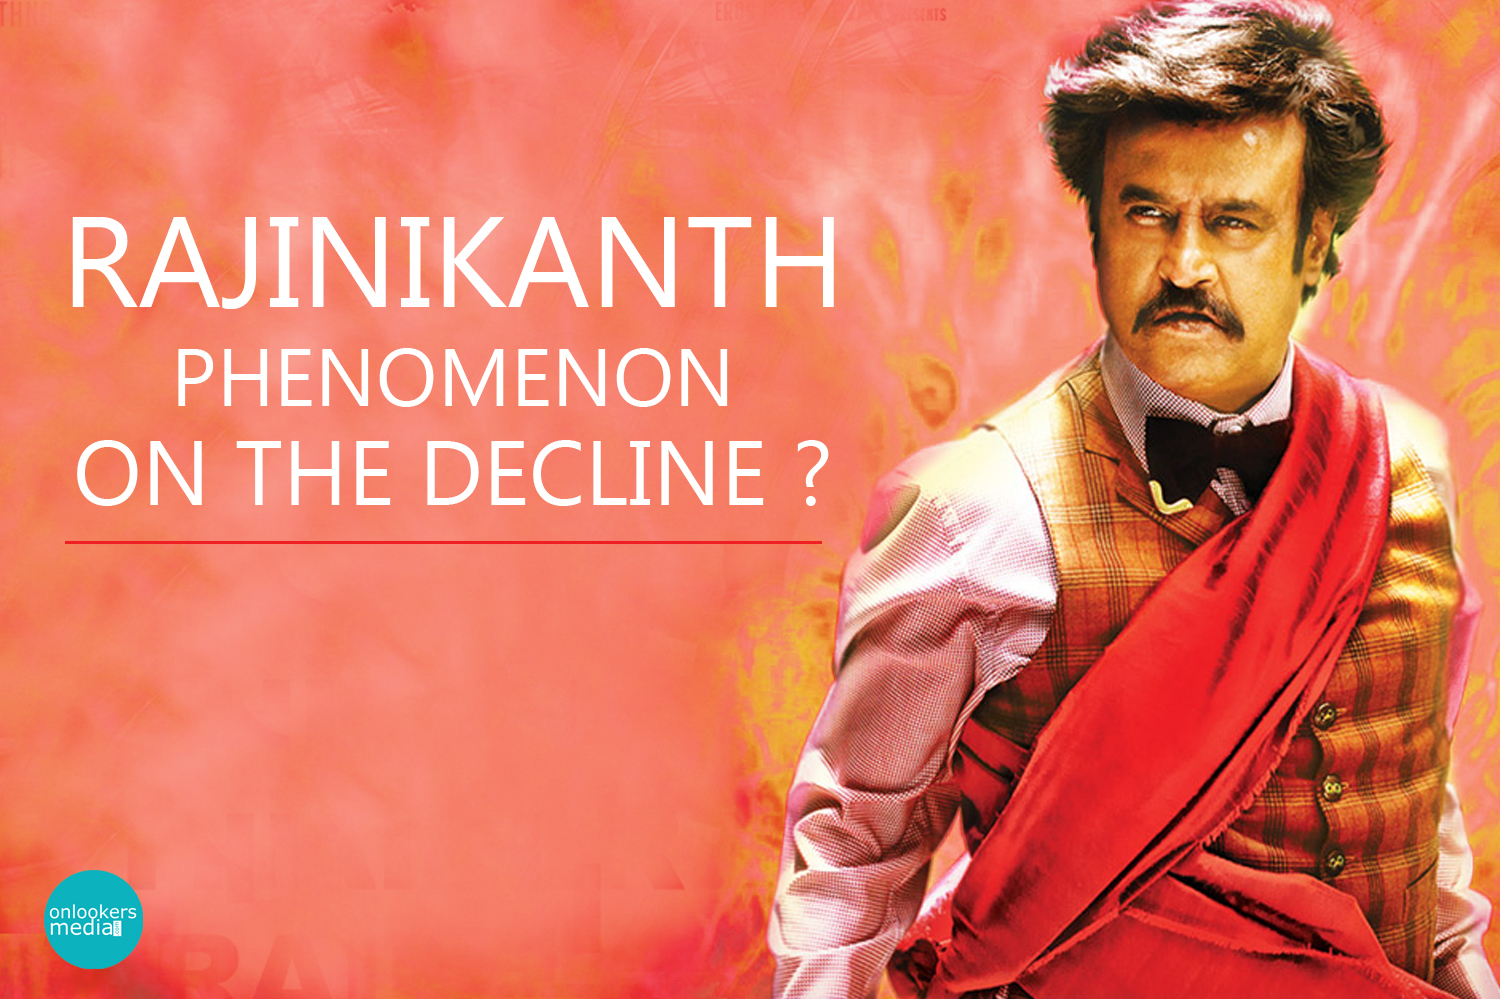 Rajinikanth phenomenon on the decline-Lingaa Review-Report-Collection-Onlookers Media